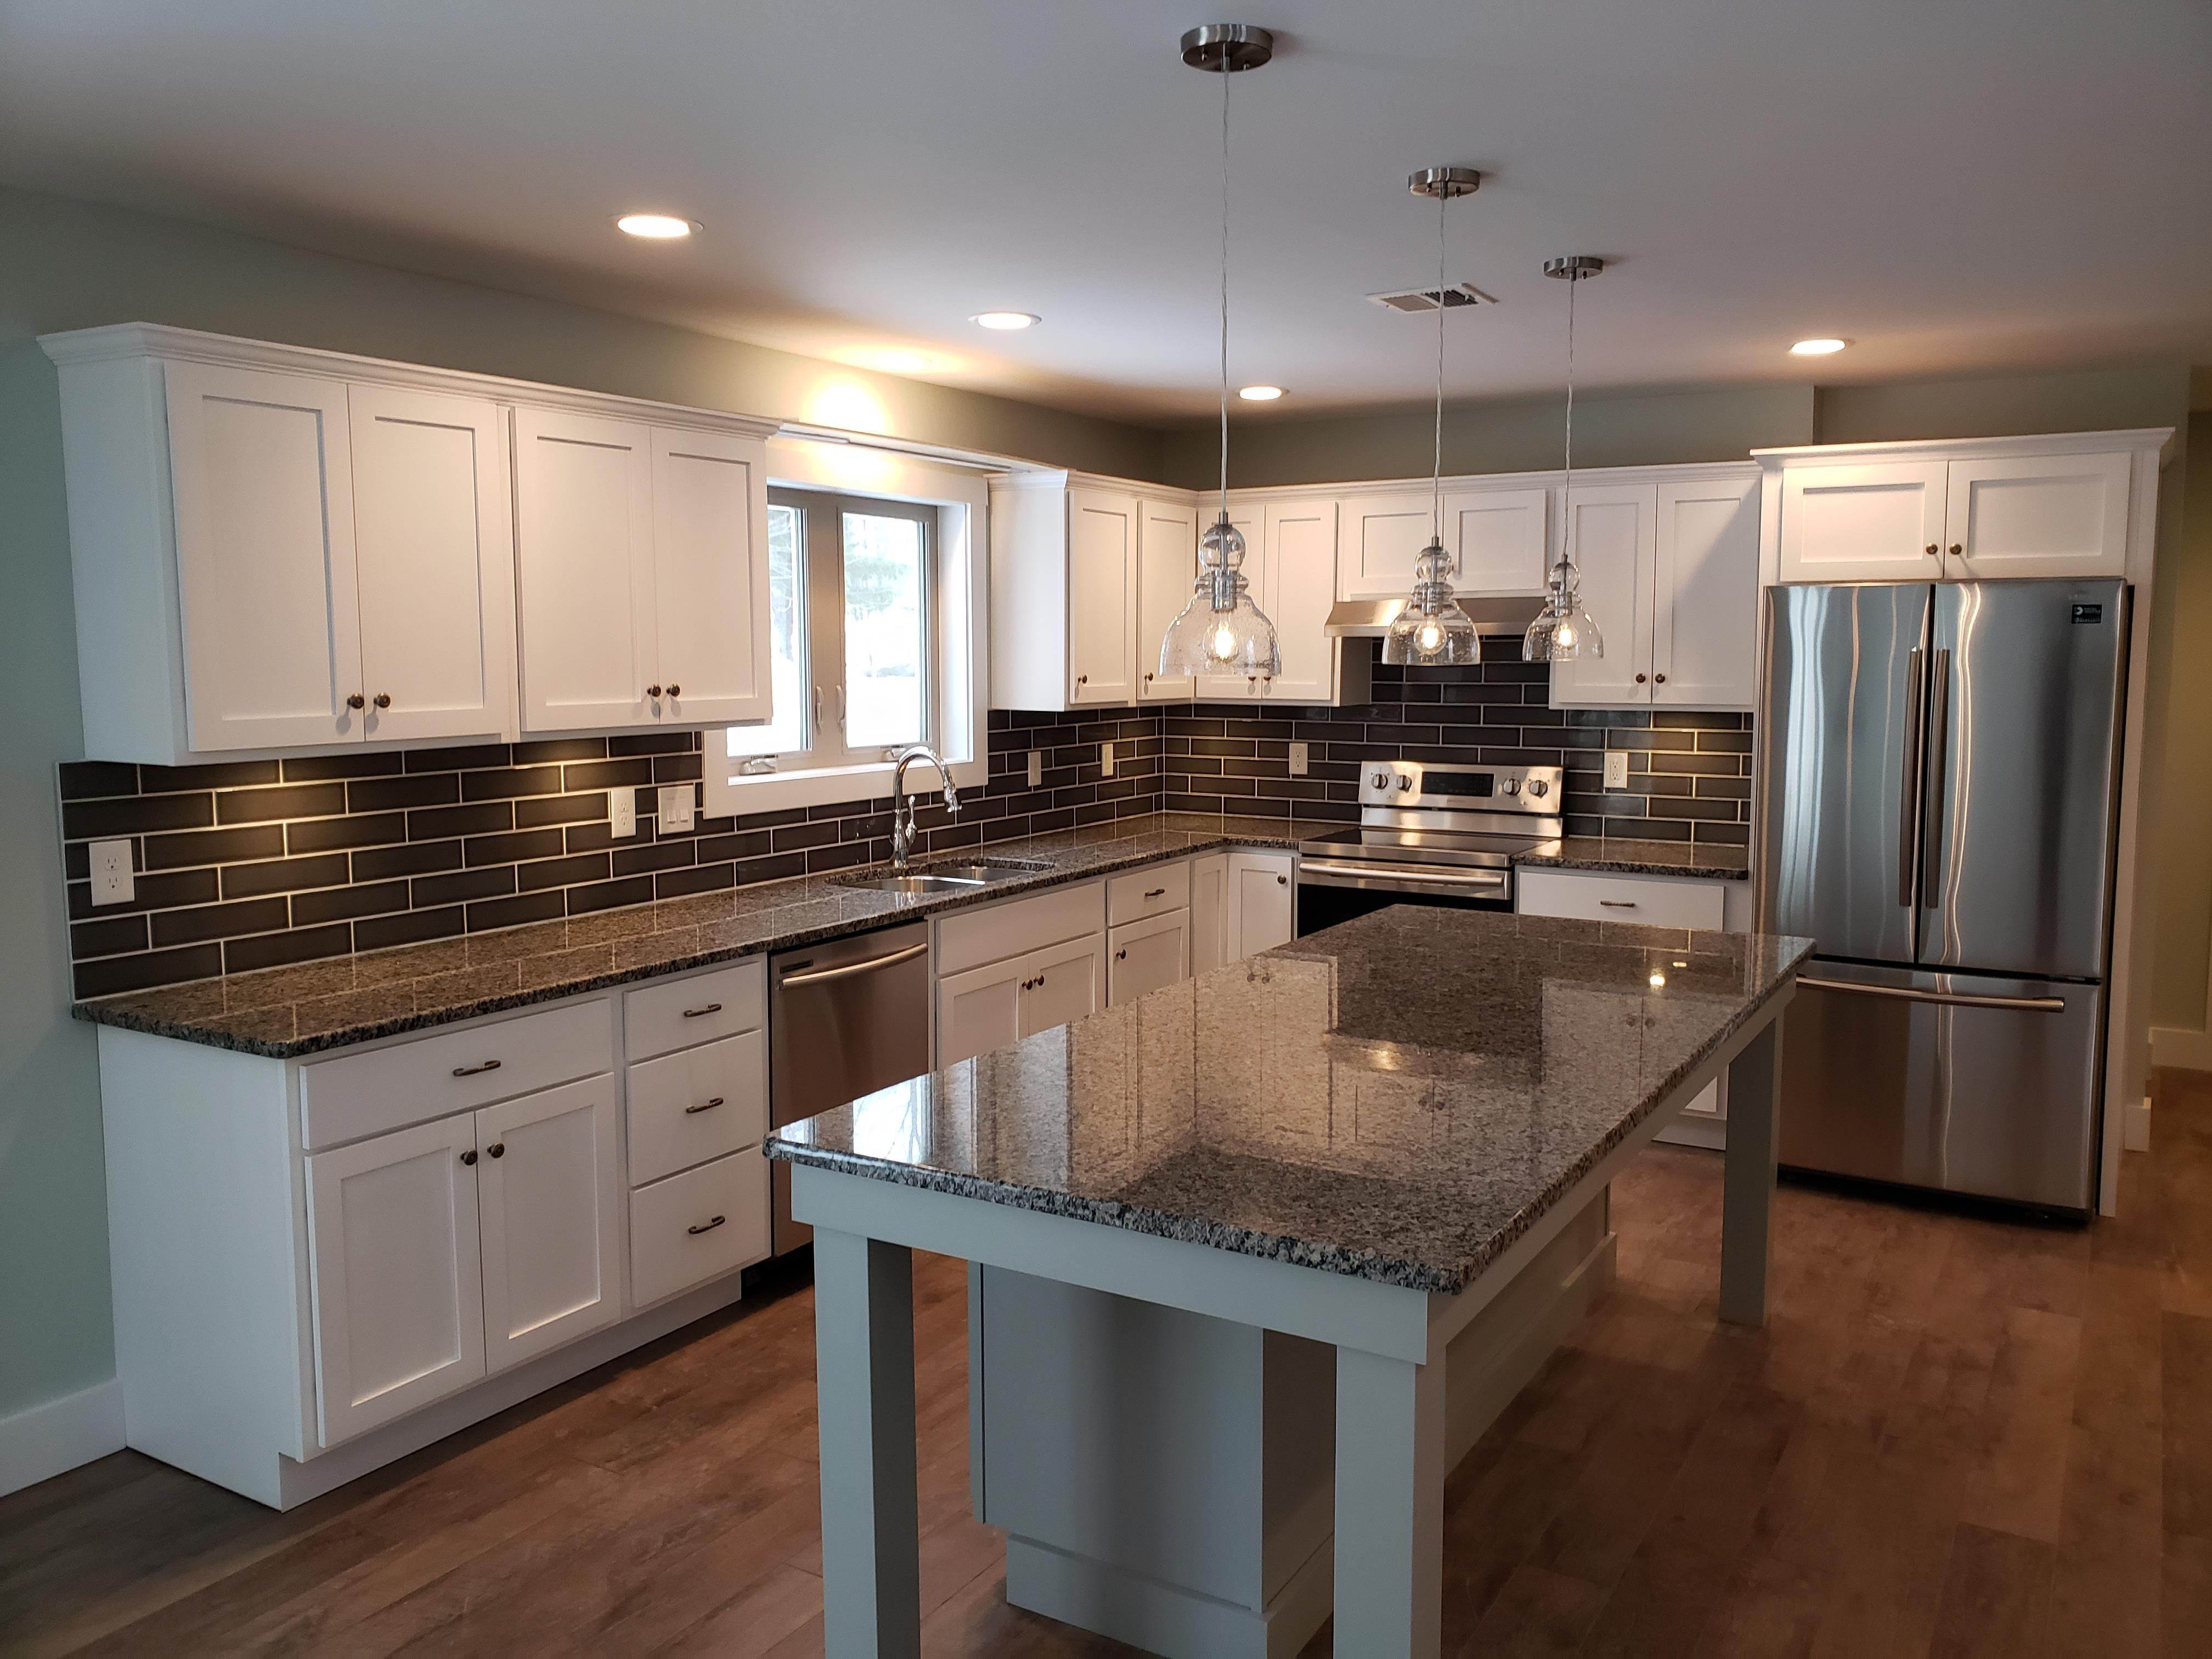 Kitchen featured in The Hawthorn By Timbercrest Builders in Poconos, PA